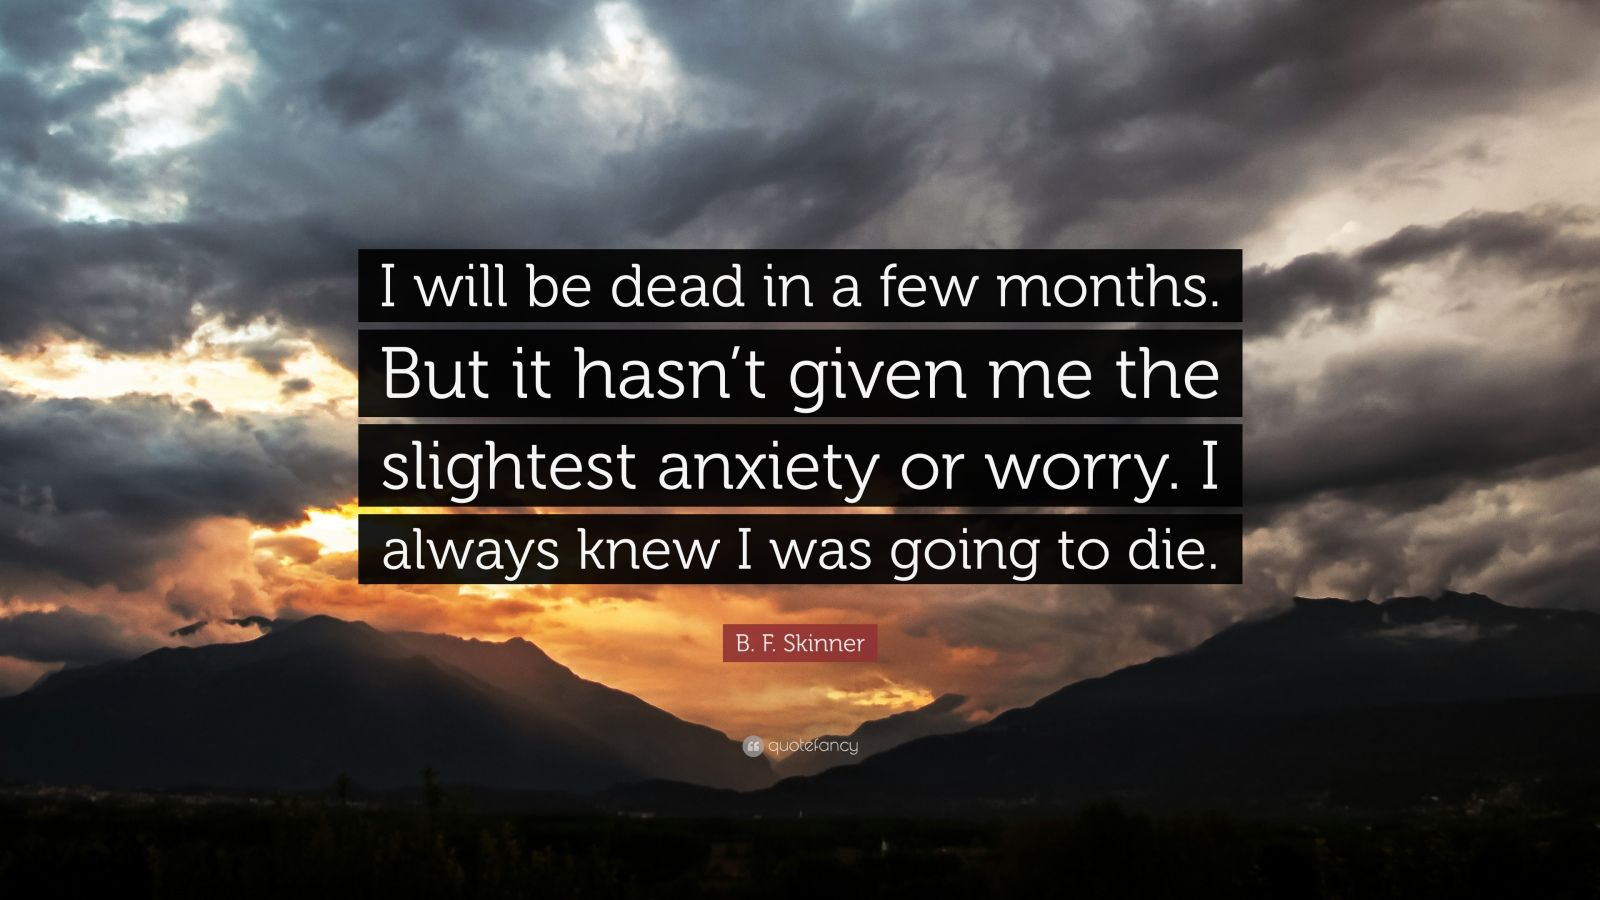 """B. F. Skinner Quote: """"I will be dead in a few months. But it hasn't given me the slightest anxiety or worry. I always knew I was going to die."""""""